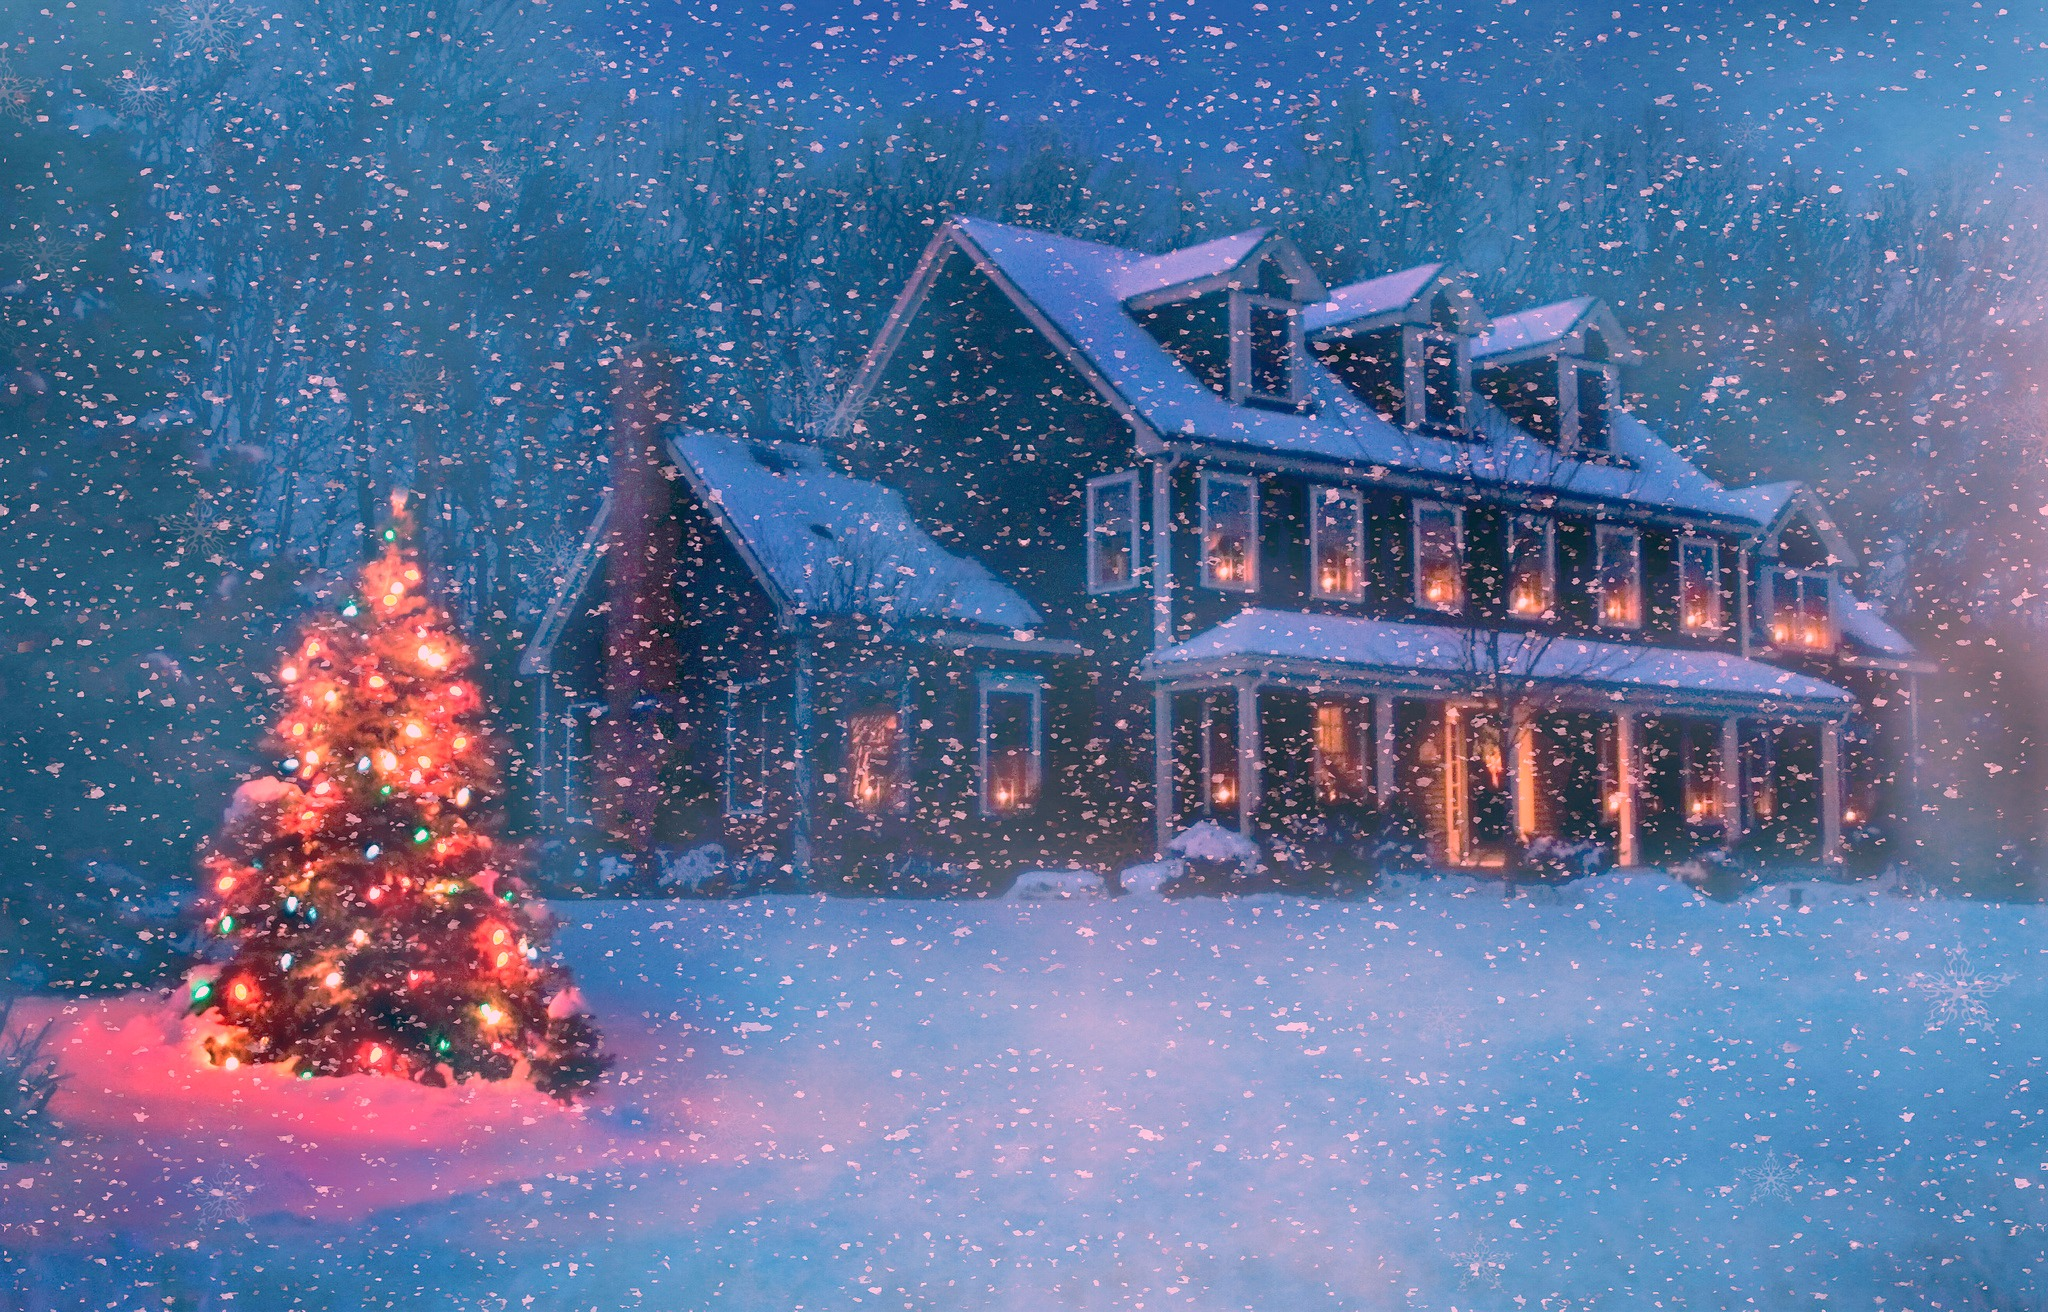 Christmas House in Winter Snowstorm Computer Wallpapers, Desktop